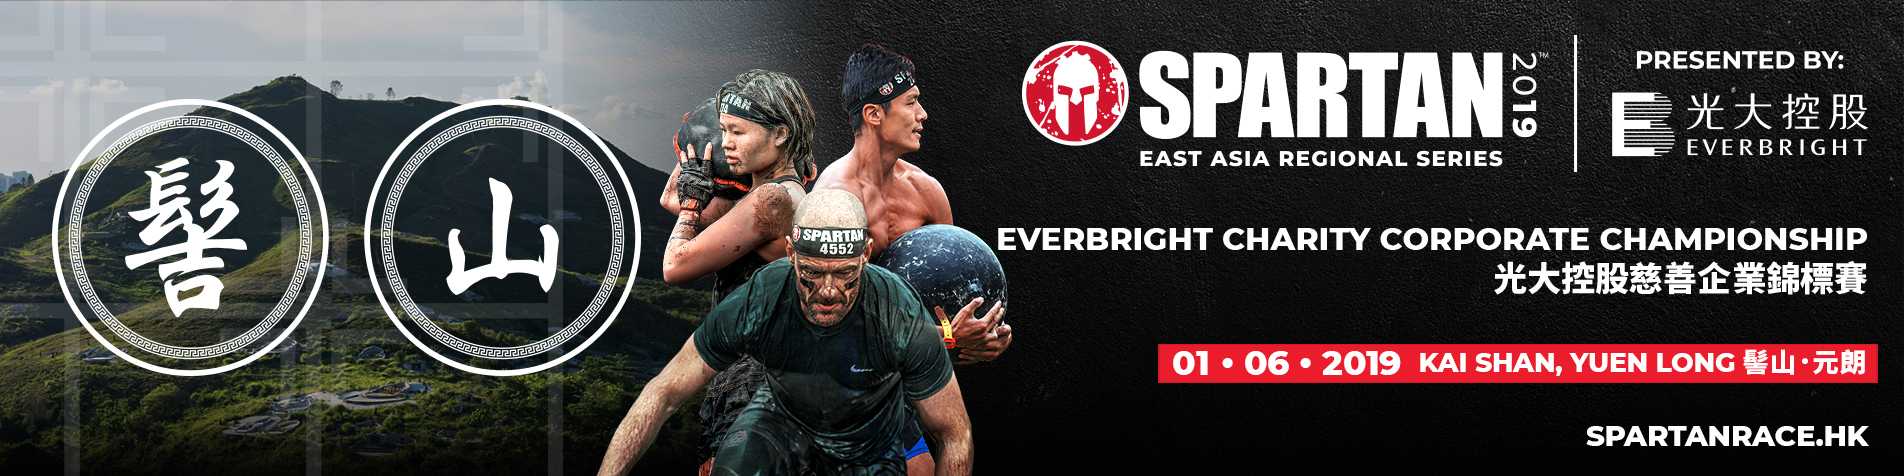 2019 Spartan Everbright Corporate Championship - Oxfam